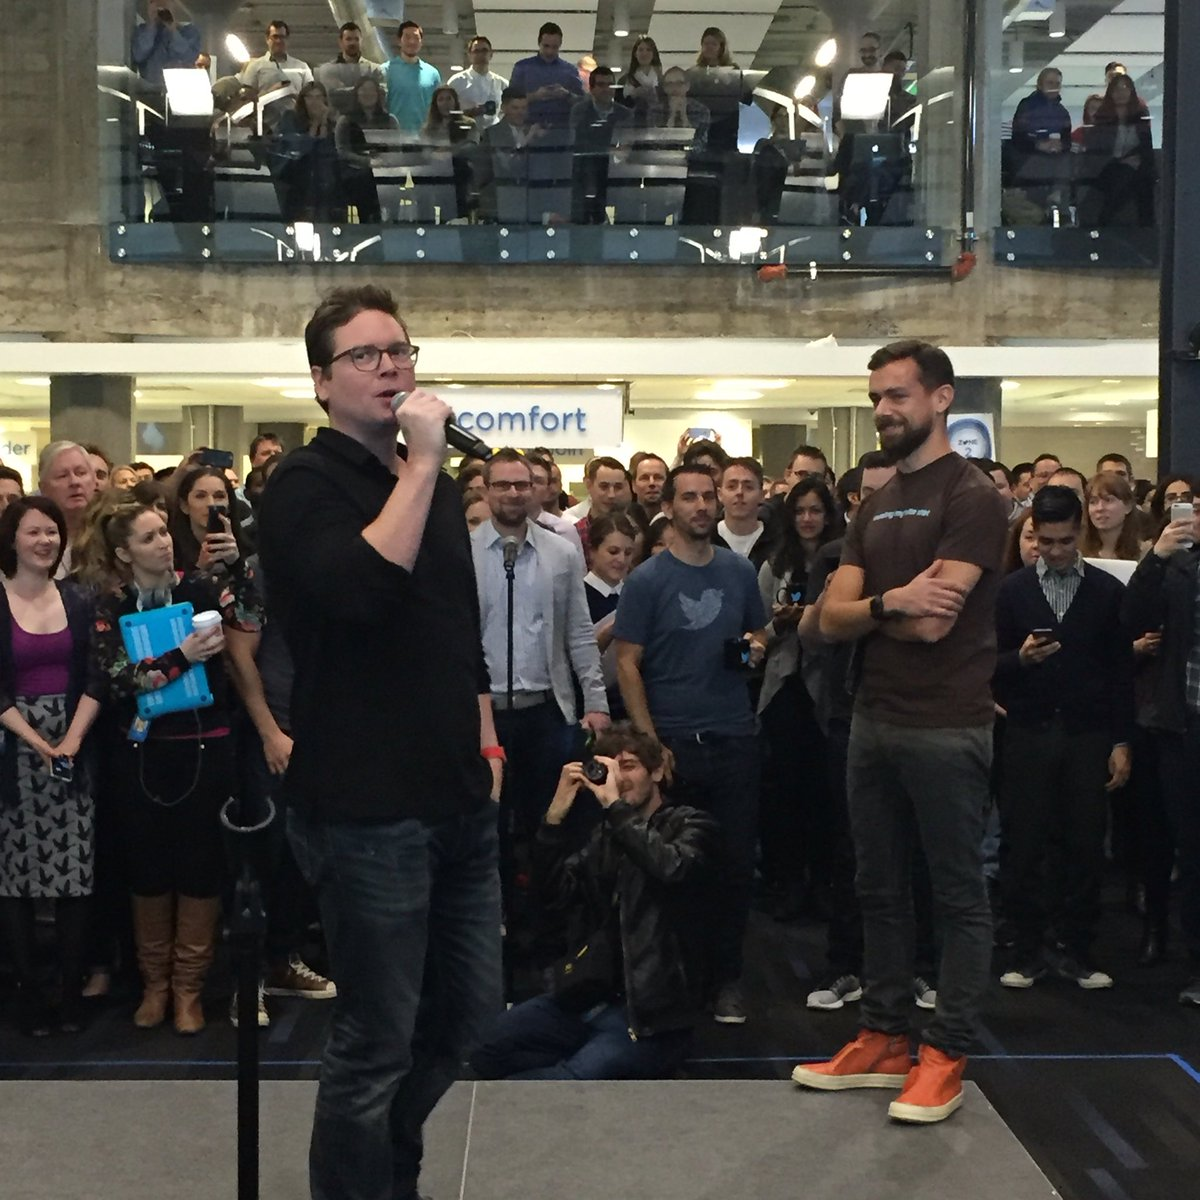 .@biz is so right. Twitter is not just a triumph of technology, it's a triumph of humanity. -#LoveTwitter https://t.co/A0w9T4F01T